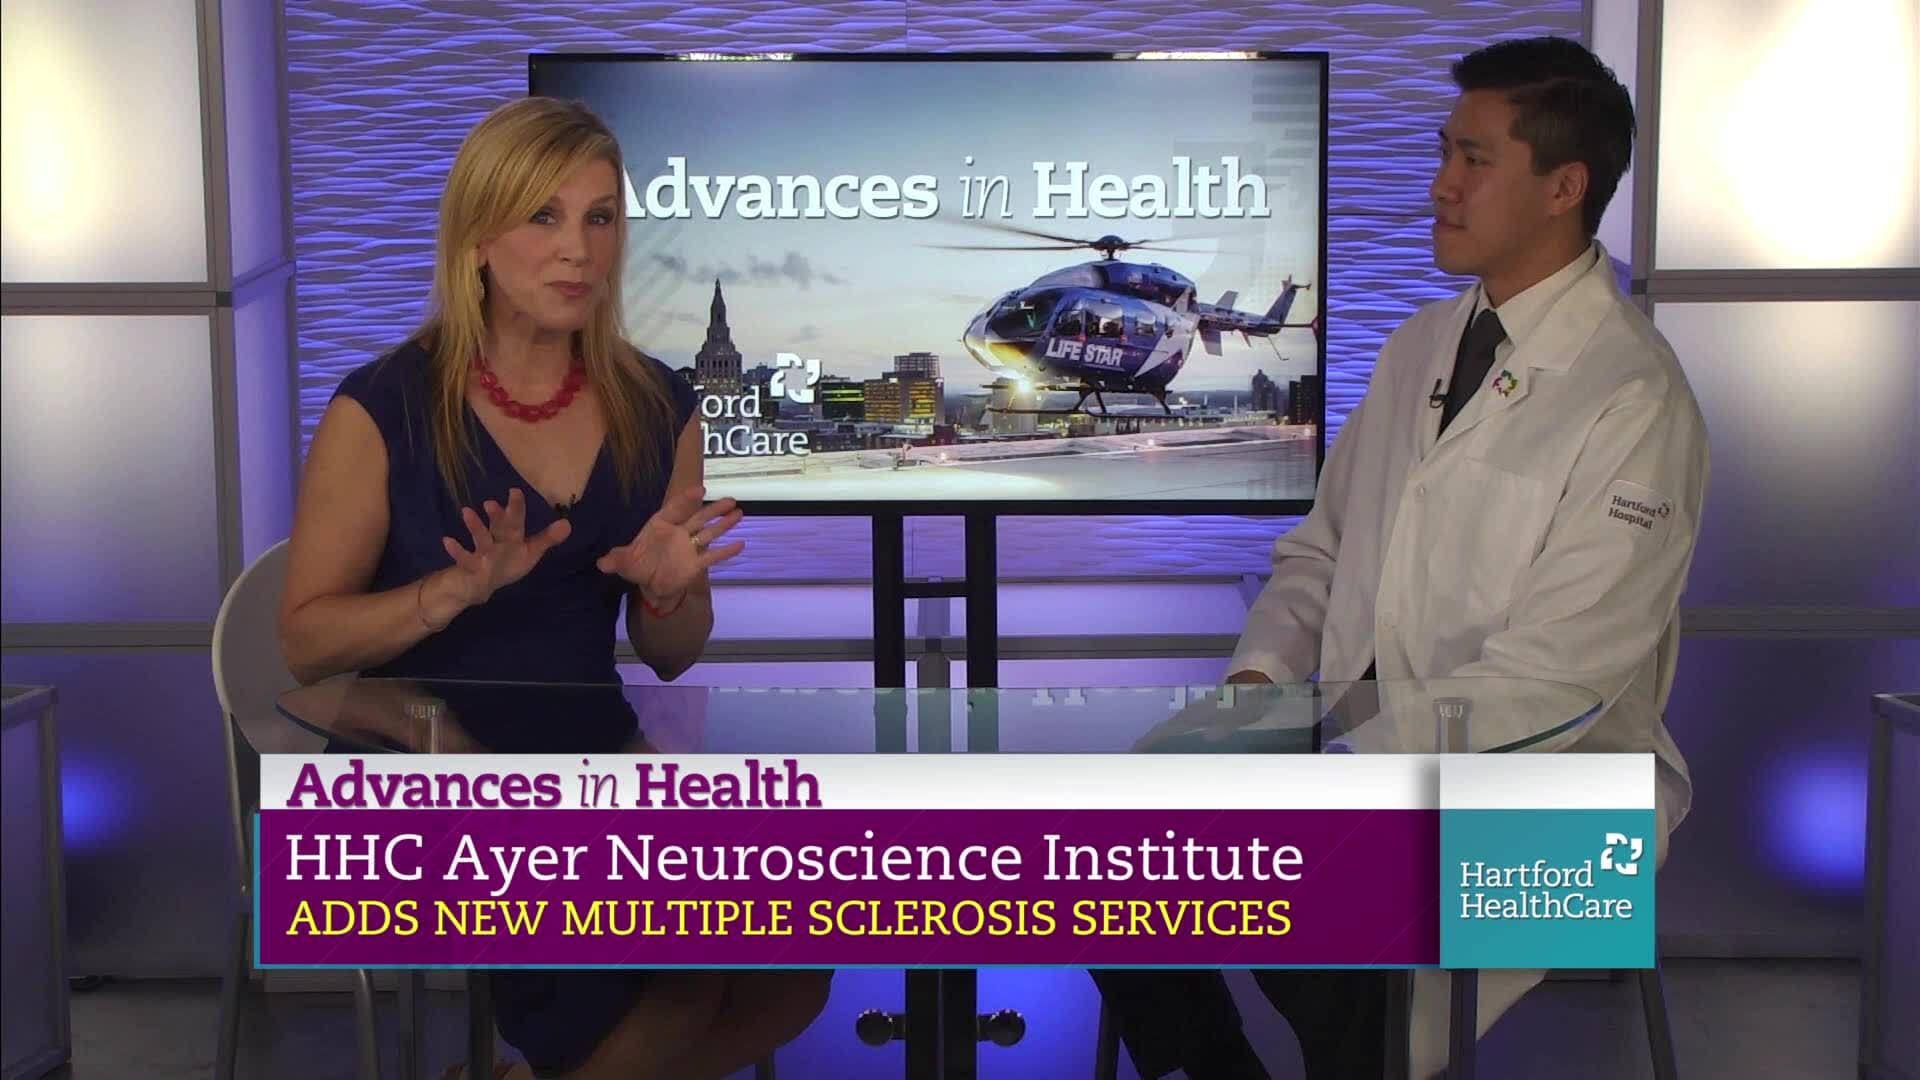 Advances in Health: Adds New Multiple Sclerosis Services